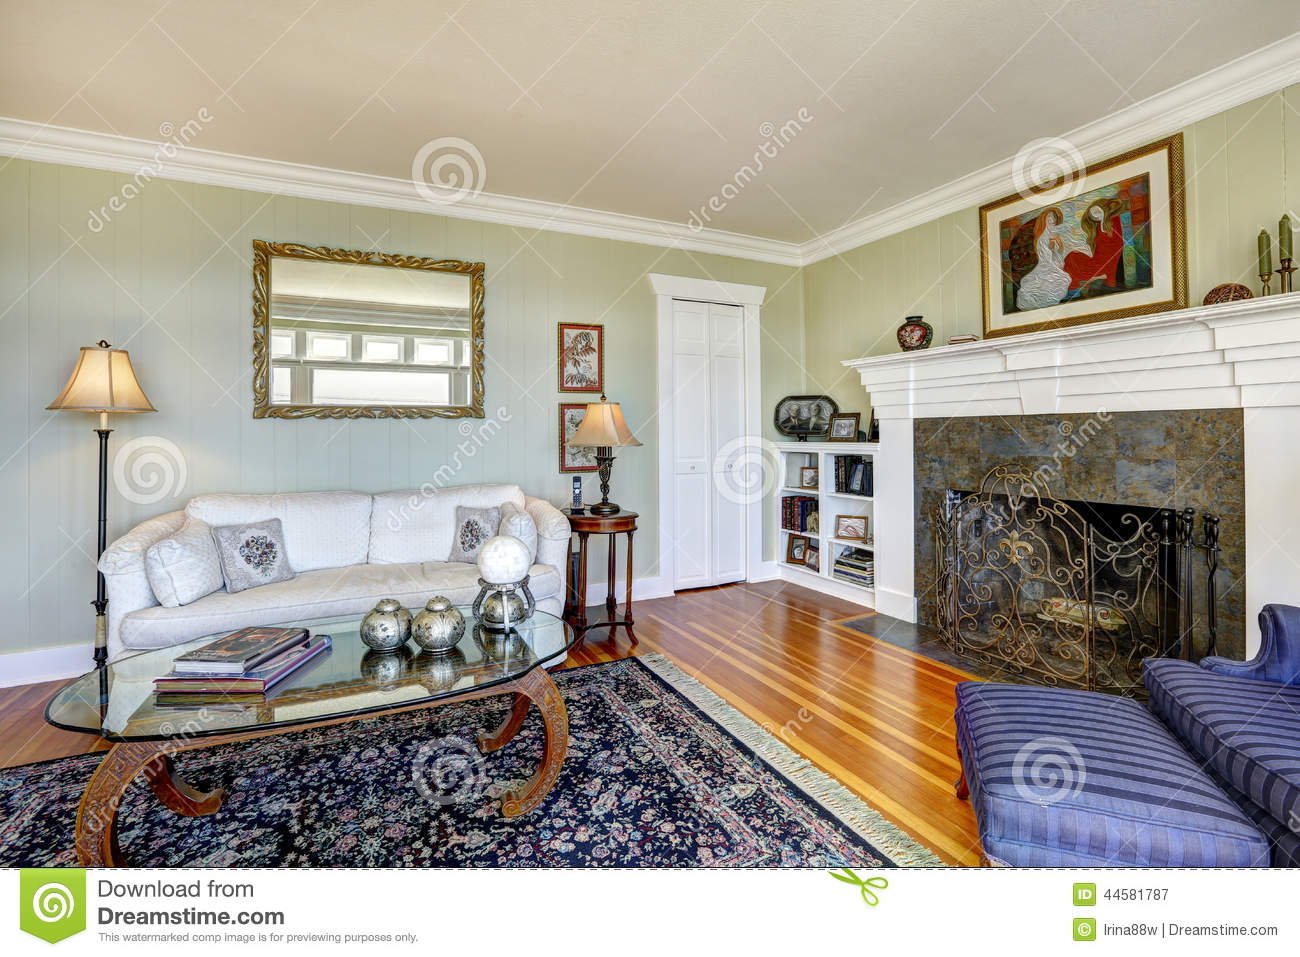 Elegant Living Room With Fireplace And Antique Couch Real Estat Stock Photo Image 44581787